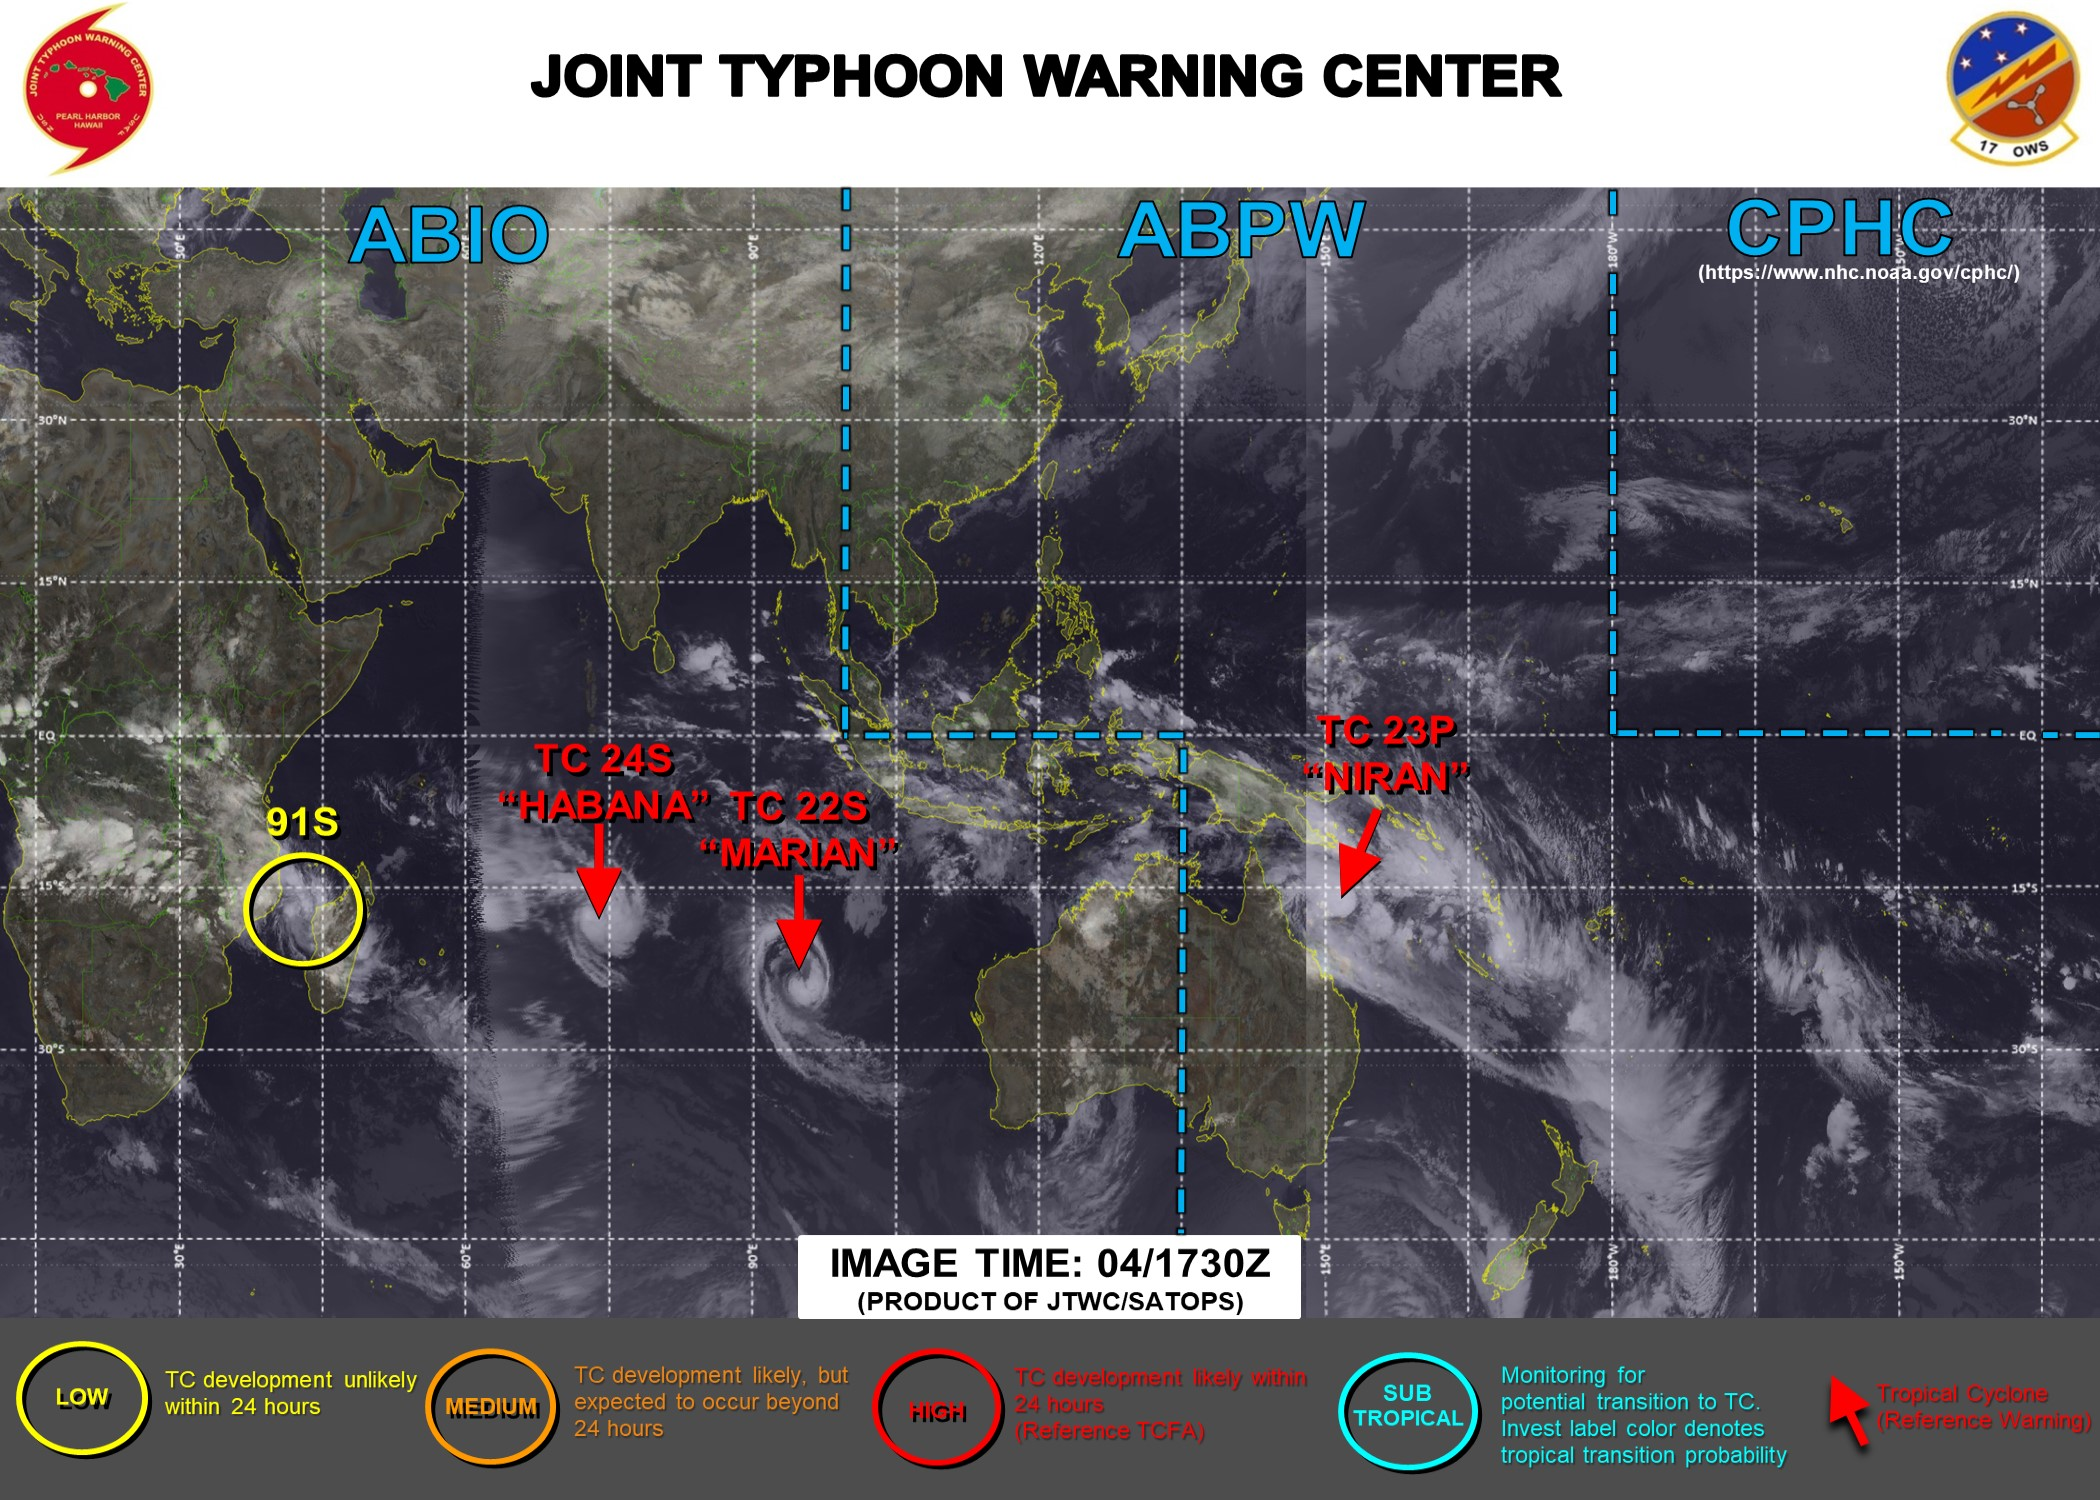 05/03UTC.THE JTWC IS ISSUING 6HOURLY WARNINGS ON 23P(NIRAN) AND 12HOURLY WARNINGS ON 22S(MARIAN) AND 24S(HABANA). 3 HOURLY SATELLITE BULLETINS ARE ISSUED FOR THE 3 SYSTEMS. INVEST 91S IS  ASSESSED AS CURRENTLY HAVING LOW CHANCES OF REACHING 35KNOTS WITHIN THE NEXT 24HOURS.